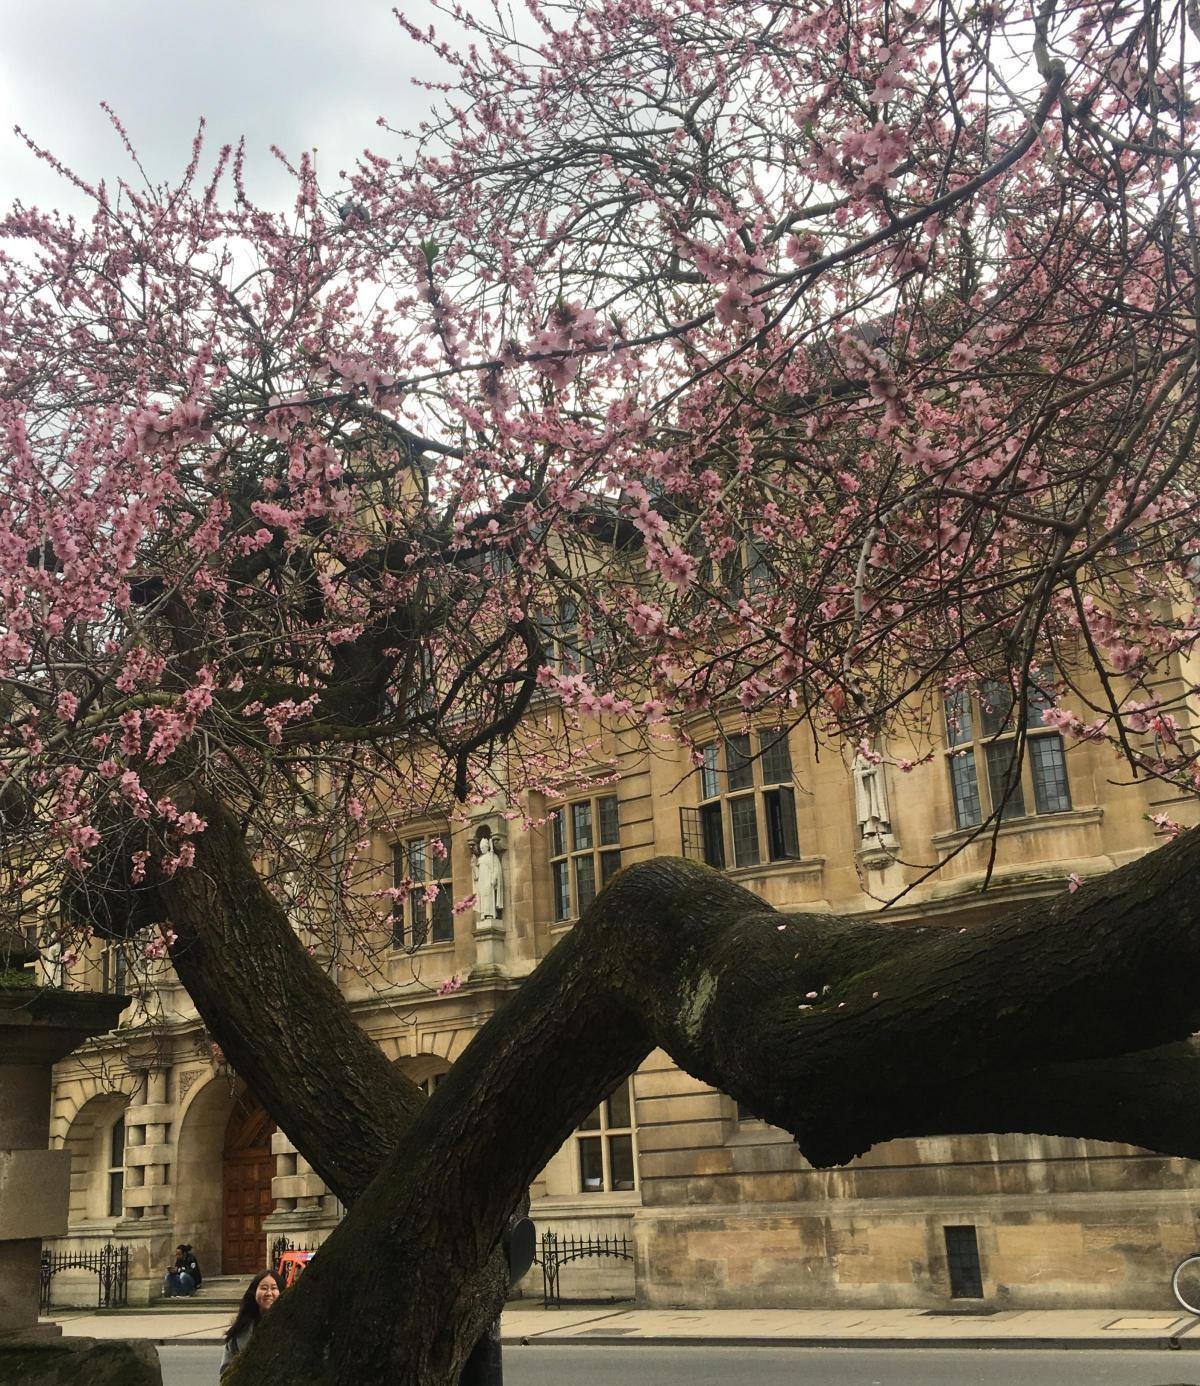 The almond trees blossom was a popular sight in the High Street